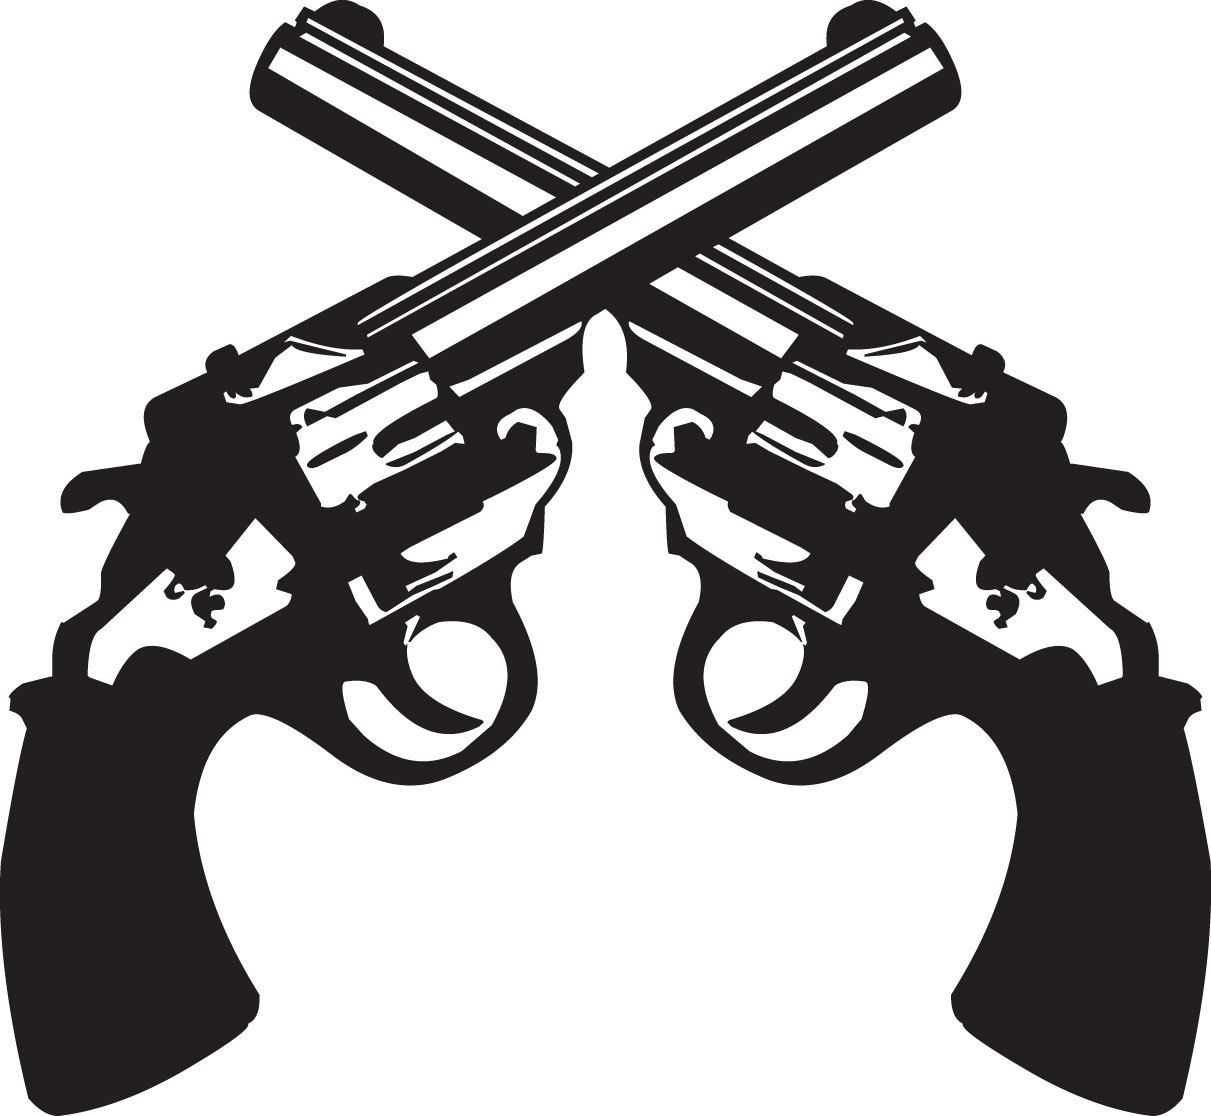 Drawn pistol crossed Guns Clipart Cliparts Clipart Crossing